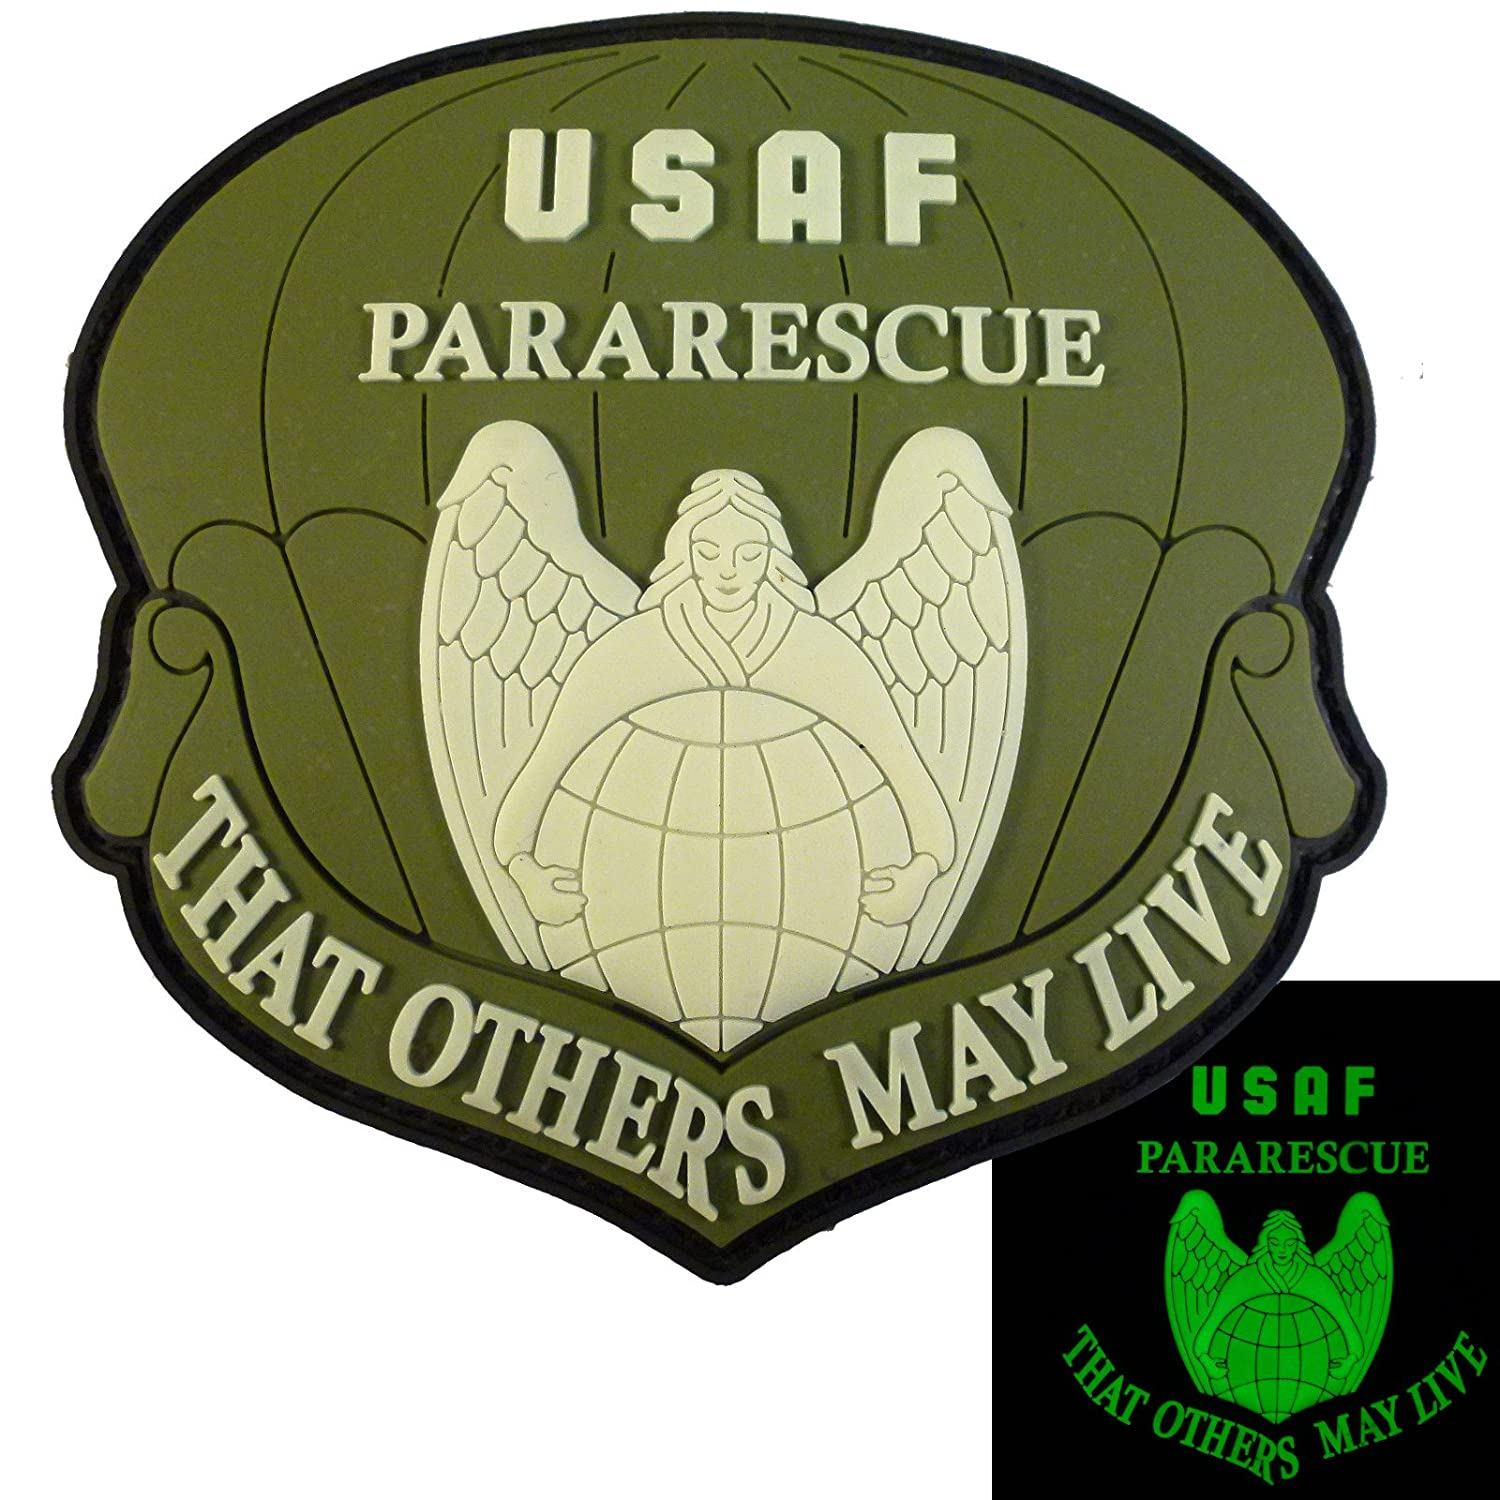 THAT OTHERS MAY LIVE USAF Pararescue Olive Drab Multicam Glow Dark PVC Touch Fastener Patch 2AFTER1 P.1737.3.V